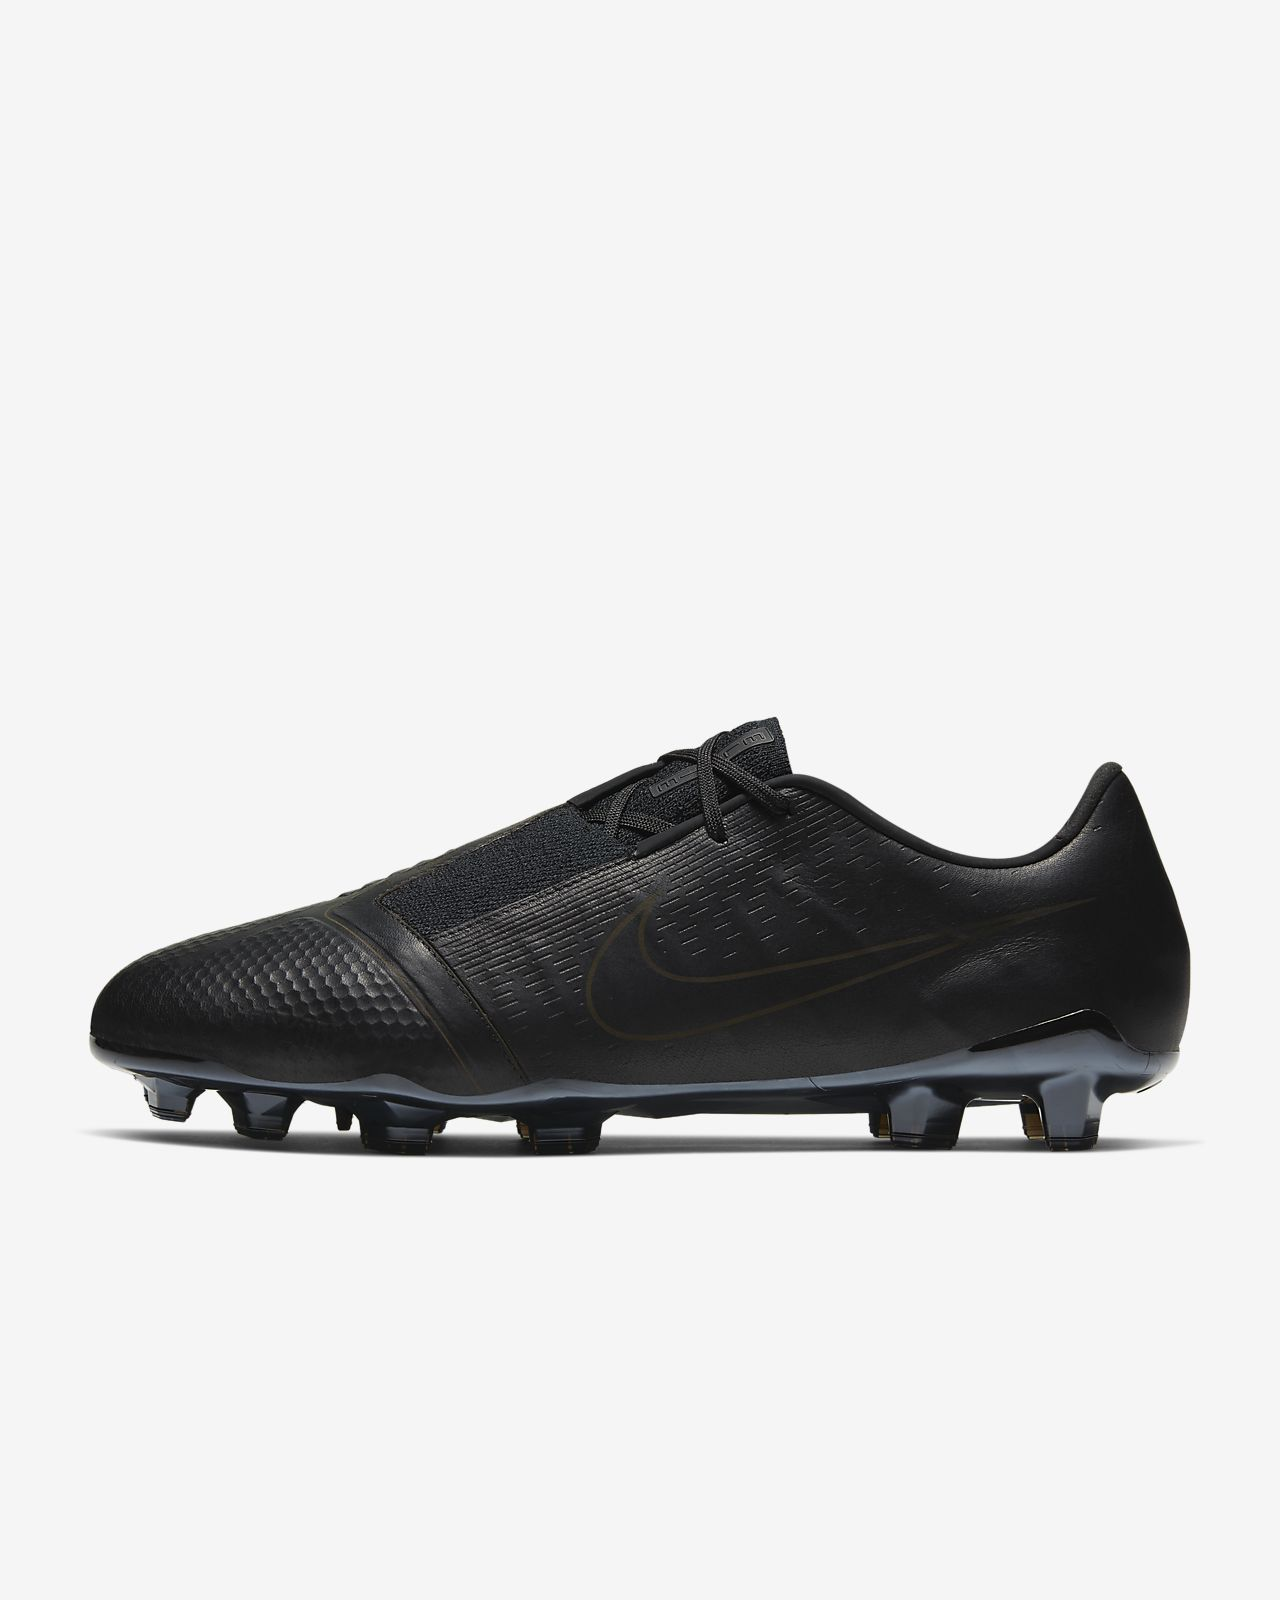 Nike PhantomVNM Elite Tech Craft FG Botes de futbol per a terreny ferm